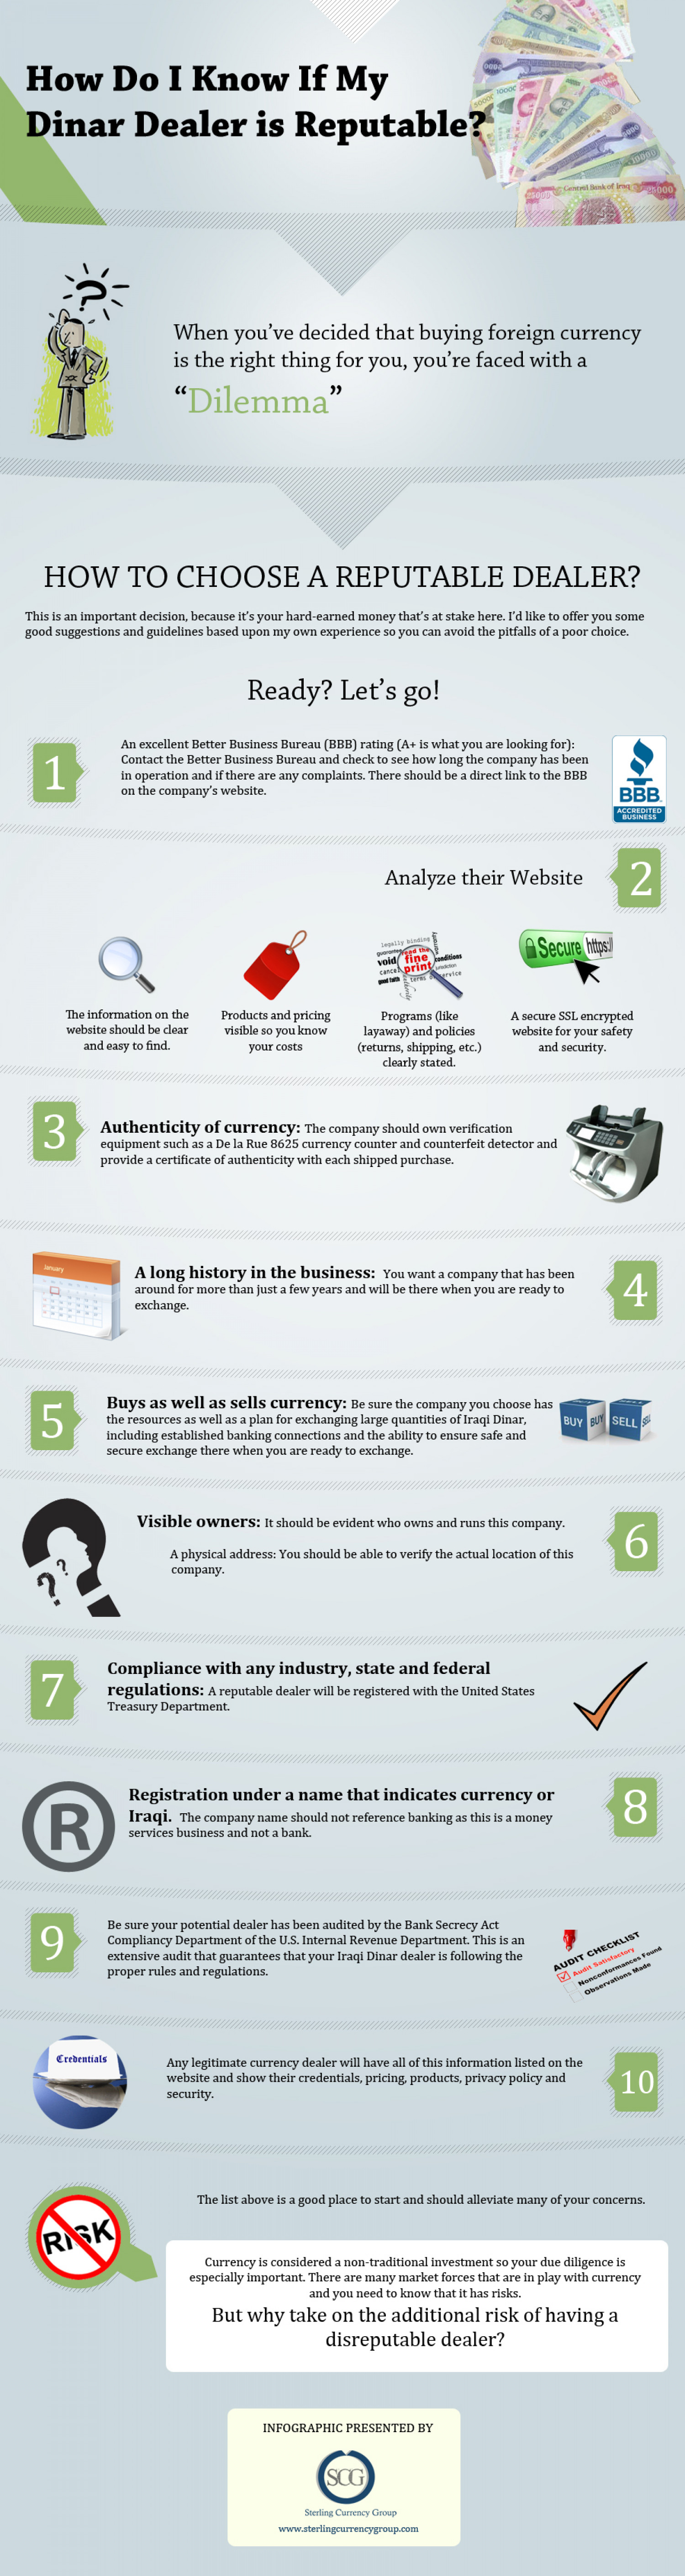 How Do I Know If My Dinar Dealer is Reputable? Infographic